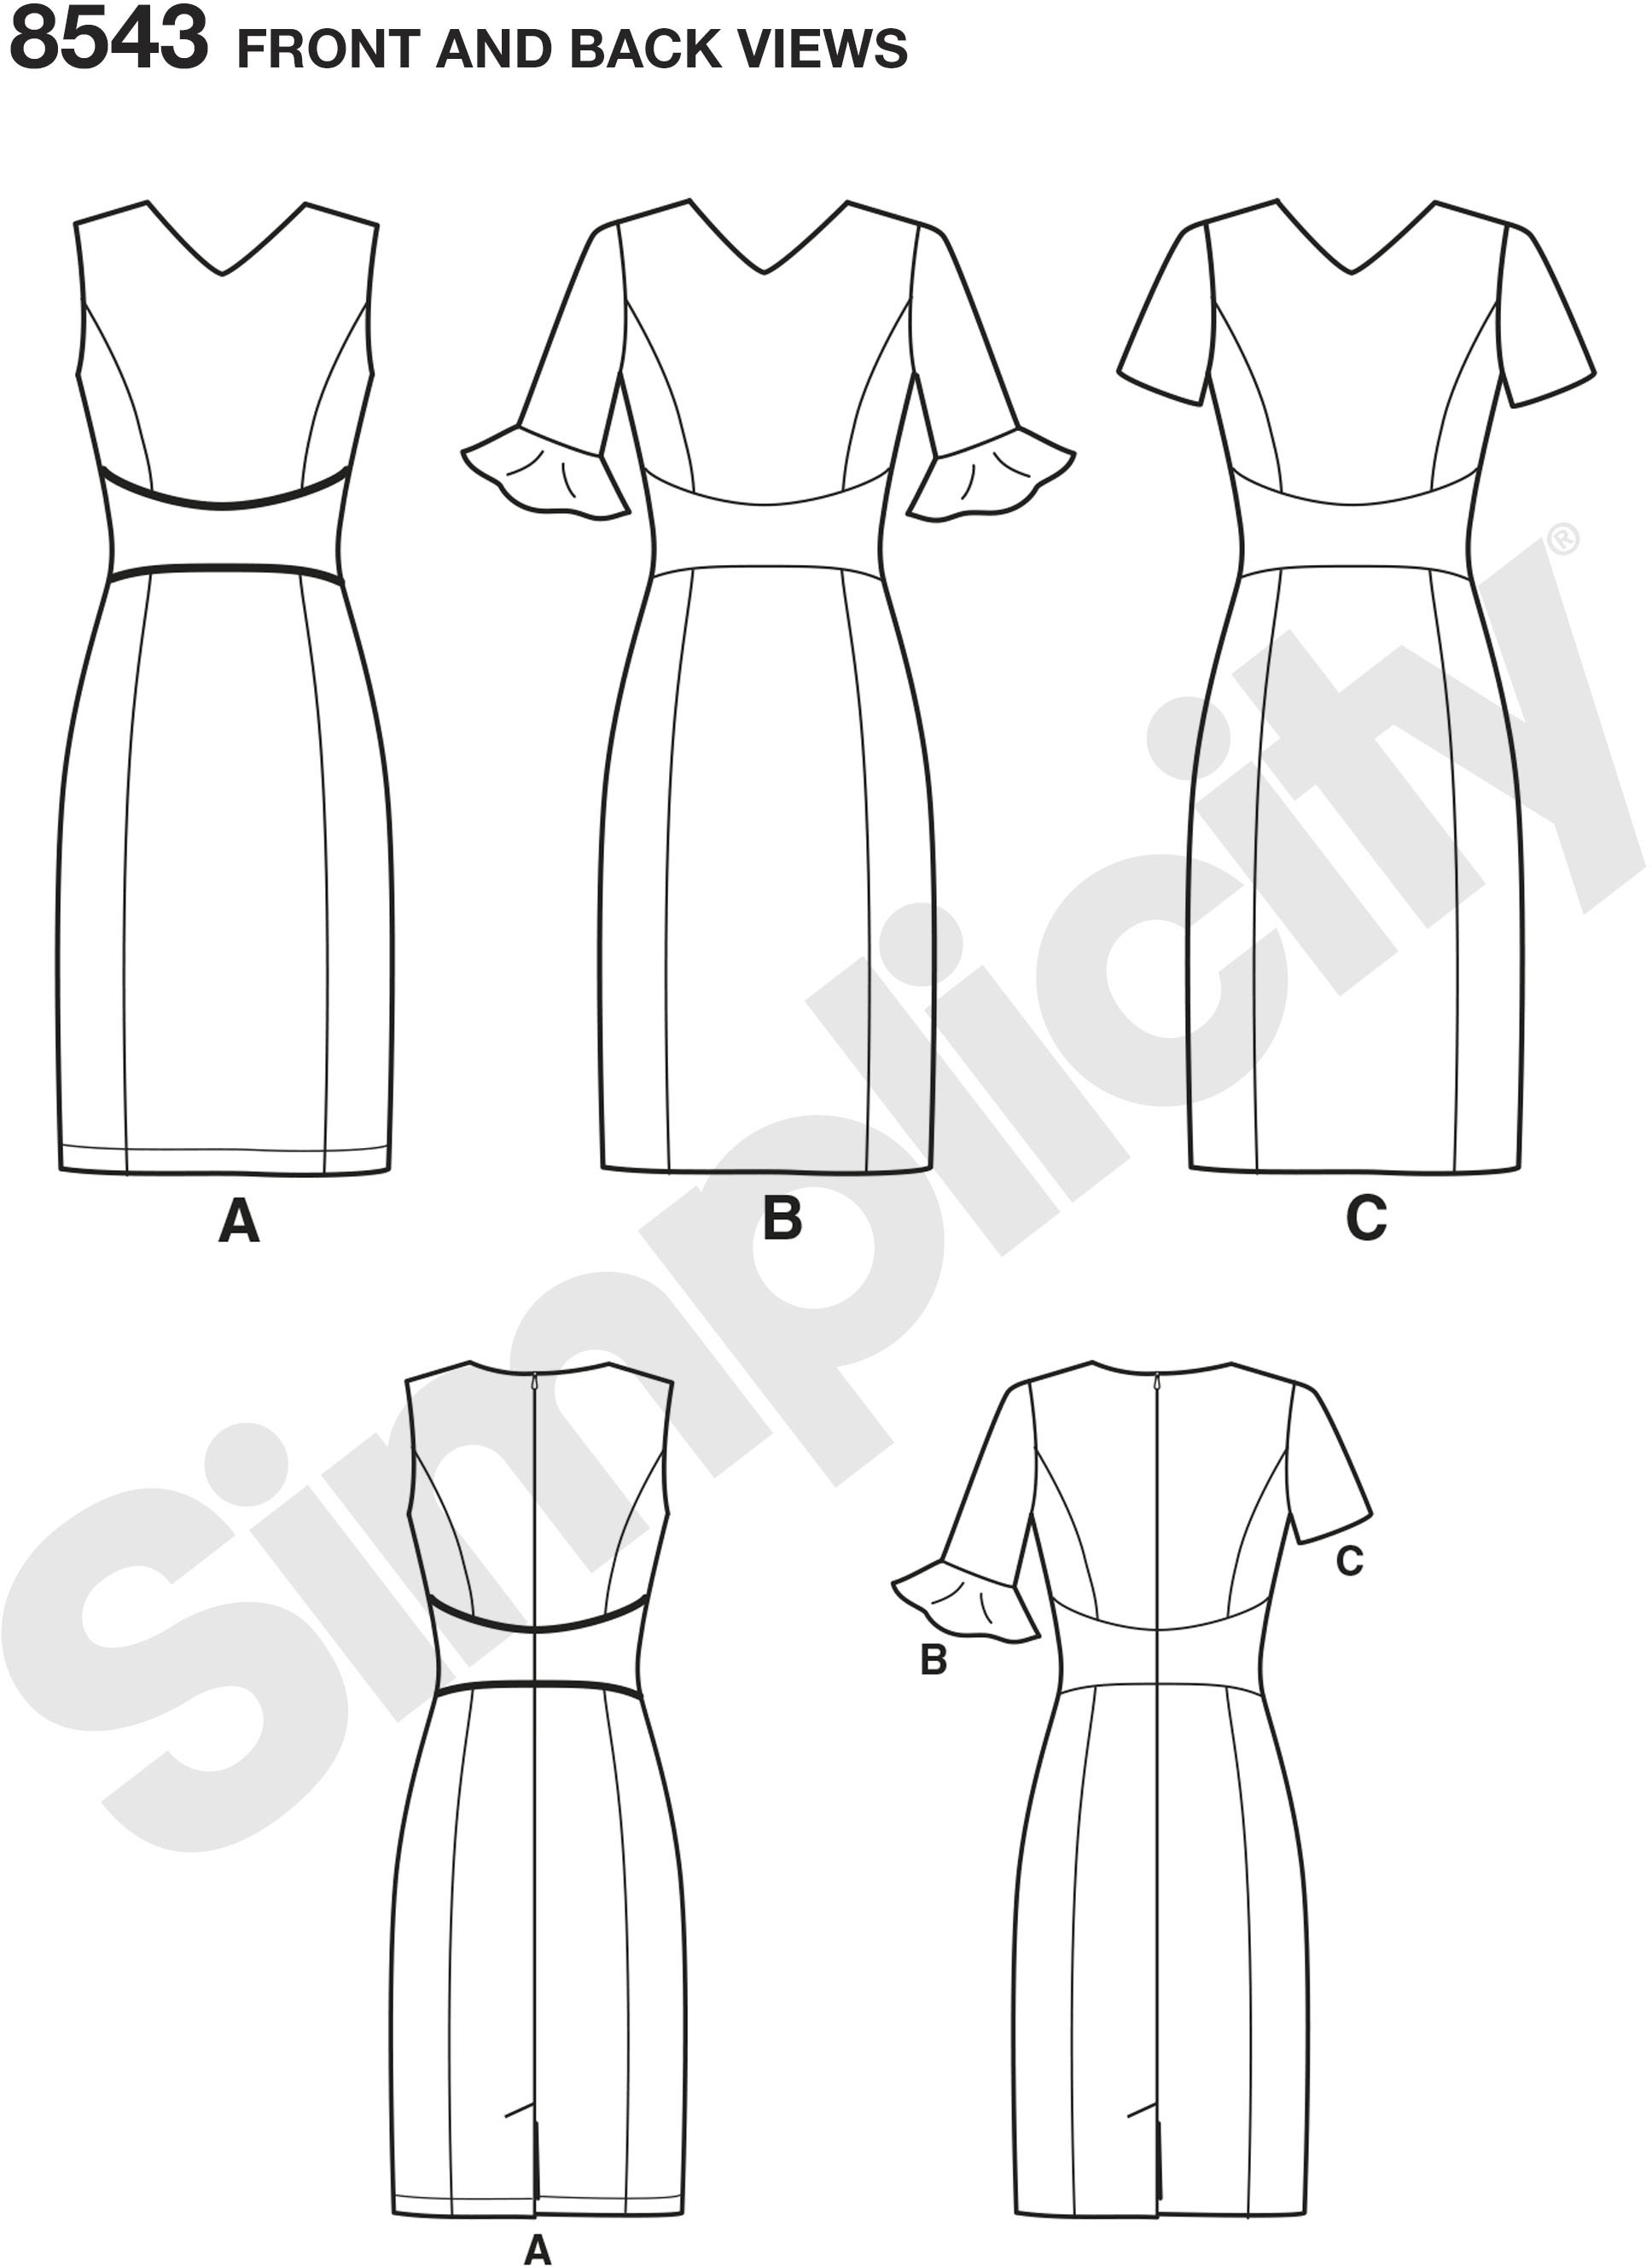 The Amazing Fit collection by Simplicity includes individual patterns for B, C, D, and DD cup sizes, and has separate patterns for a slim, average and curvy fit. With these pattern pieces and special fitting instructions you can customize this dress to your proportions.